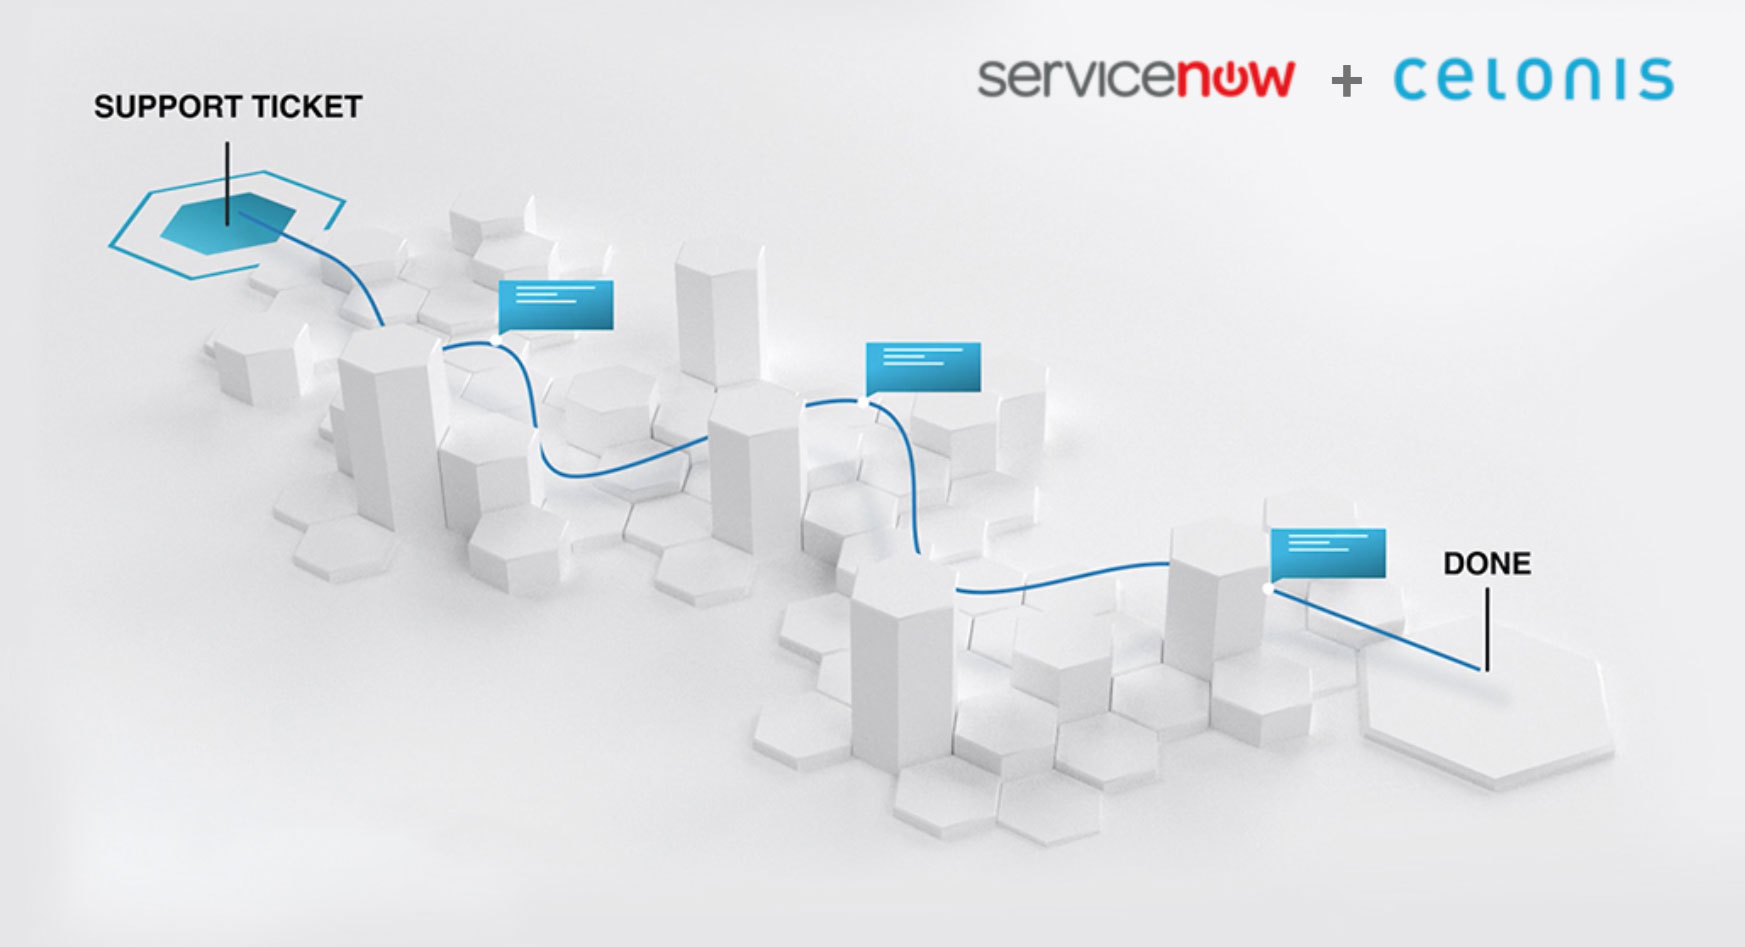 Celonis Announces Partnership with ServiceNow